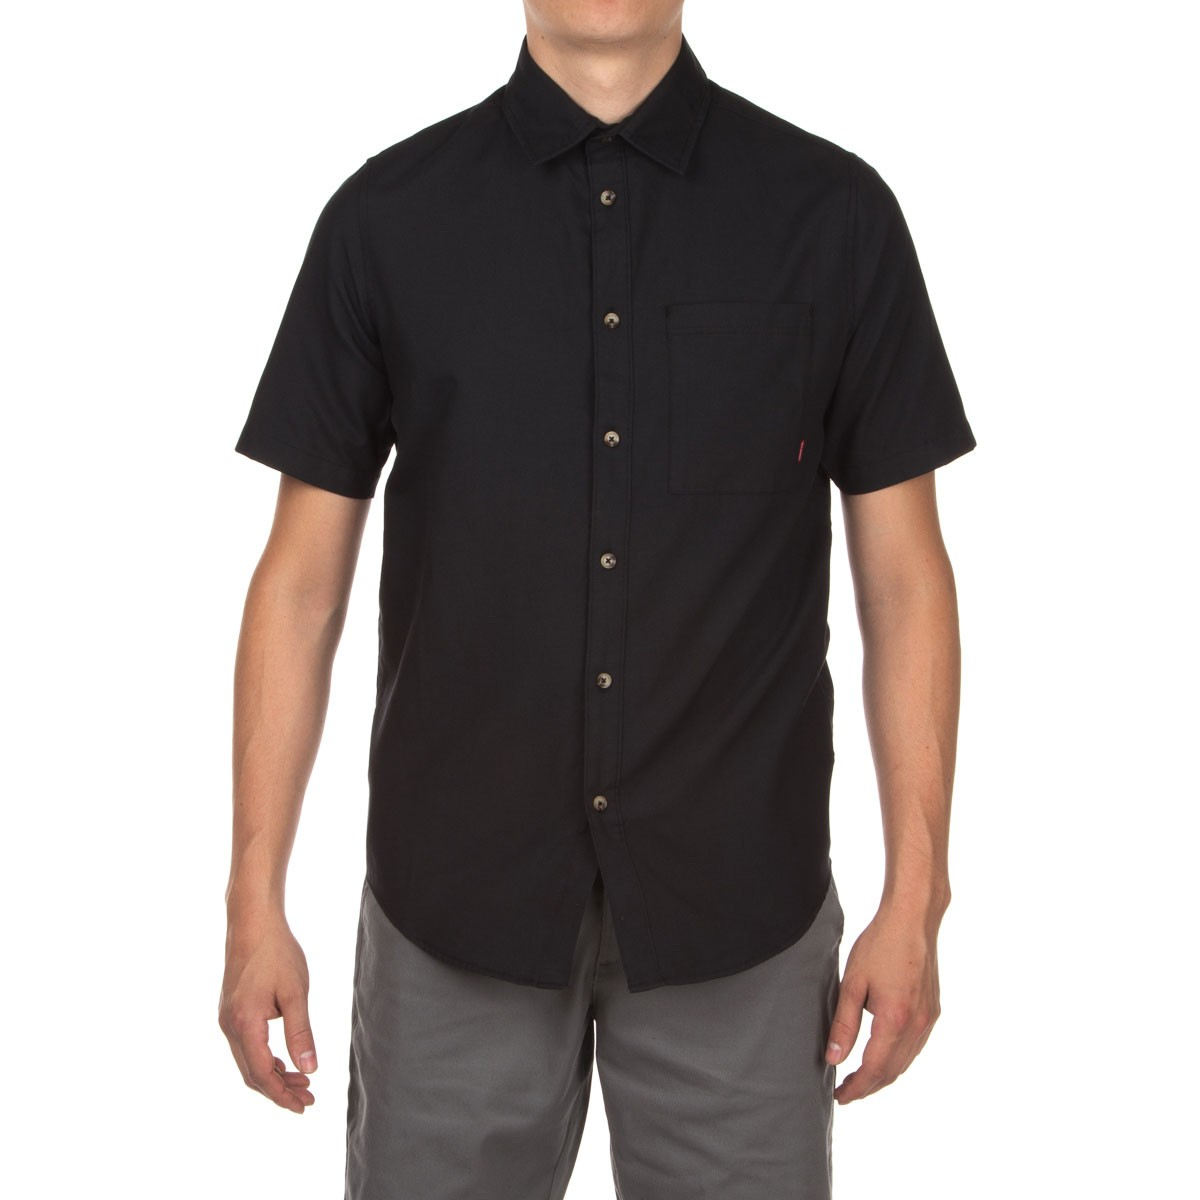 Altamont Alass Short Sleeve Woven Shirt - Black